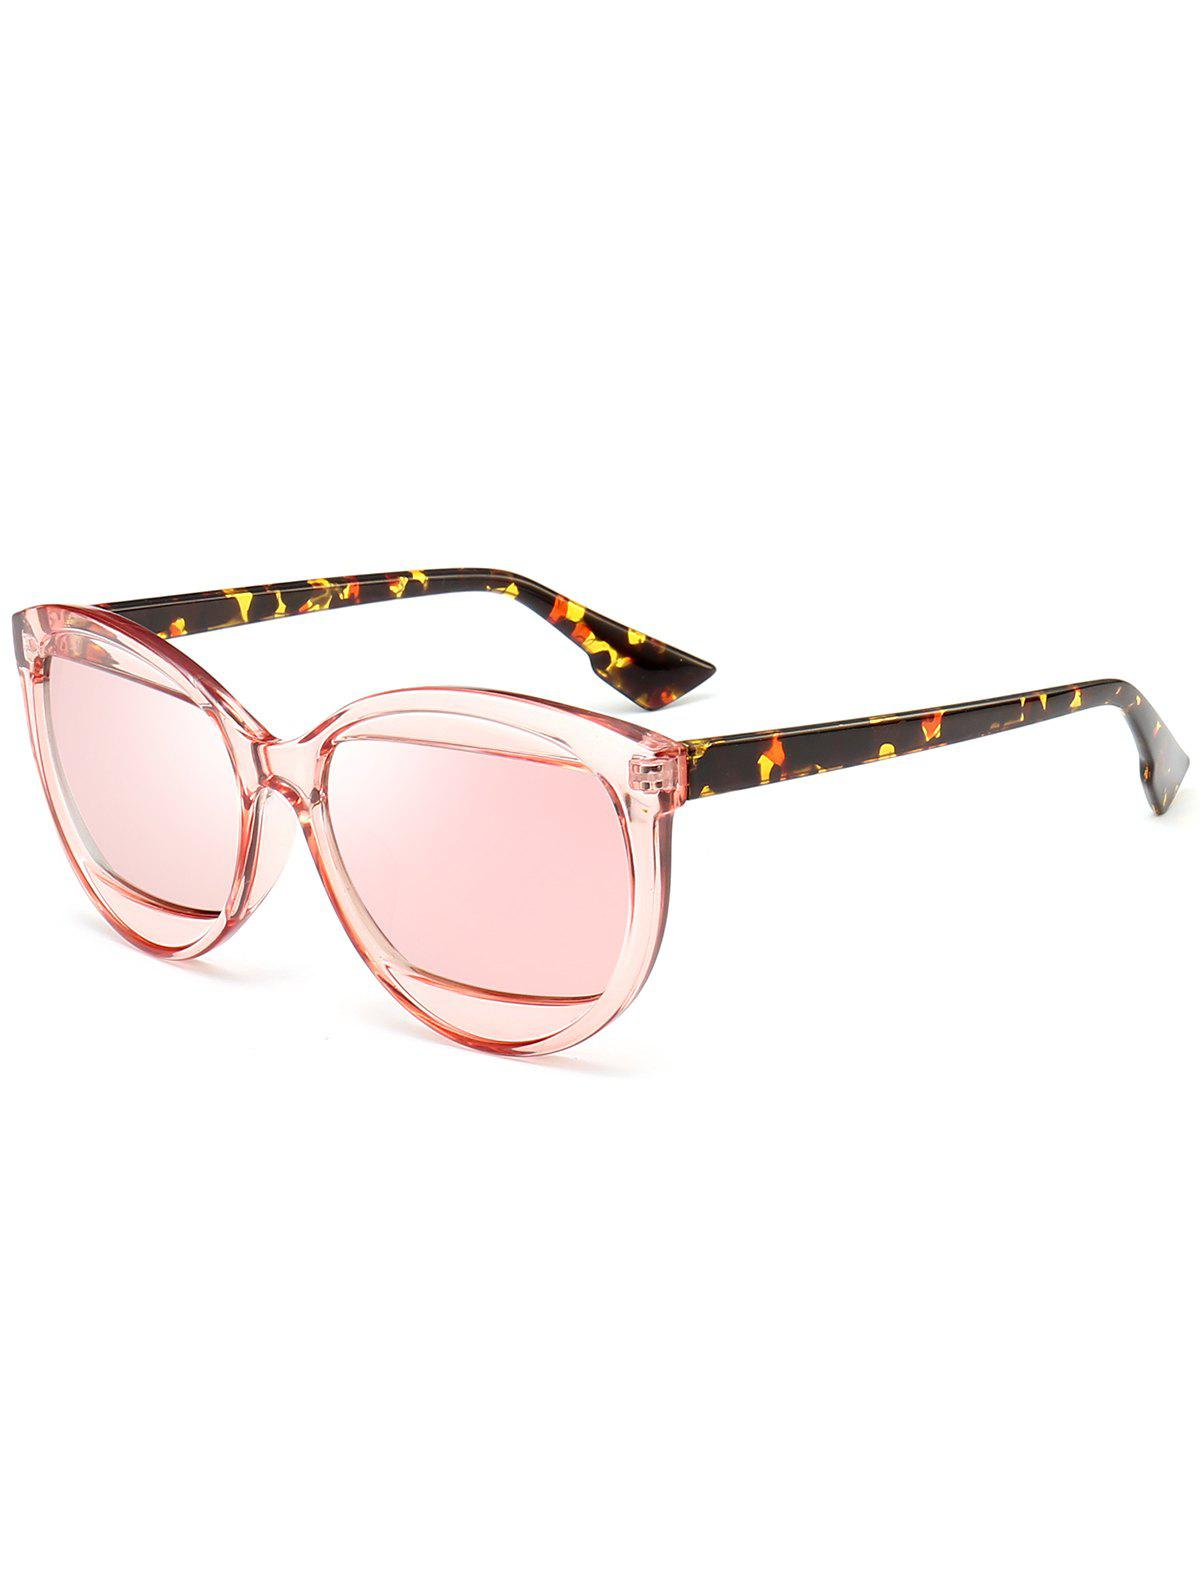 Eyebrow Design Cat Eye Sunglasses - PINK